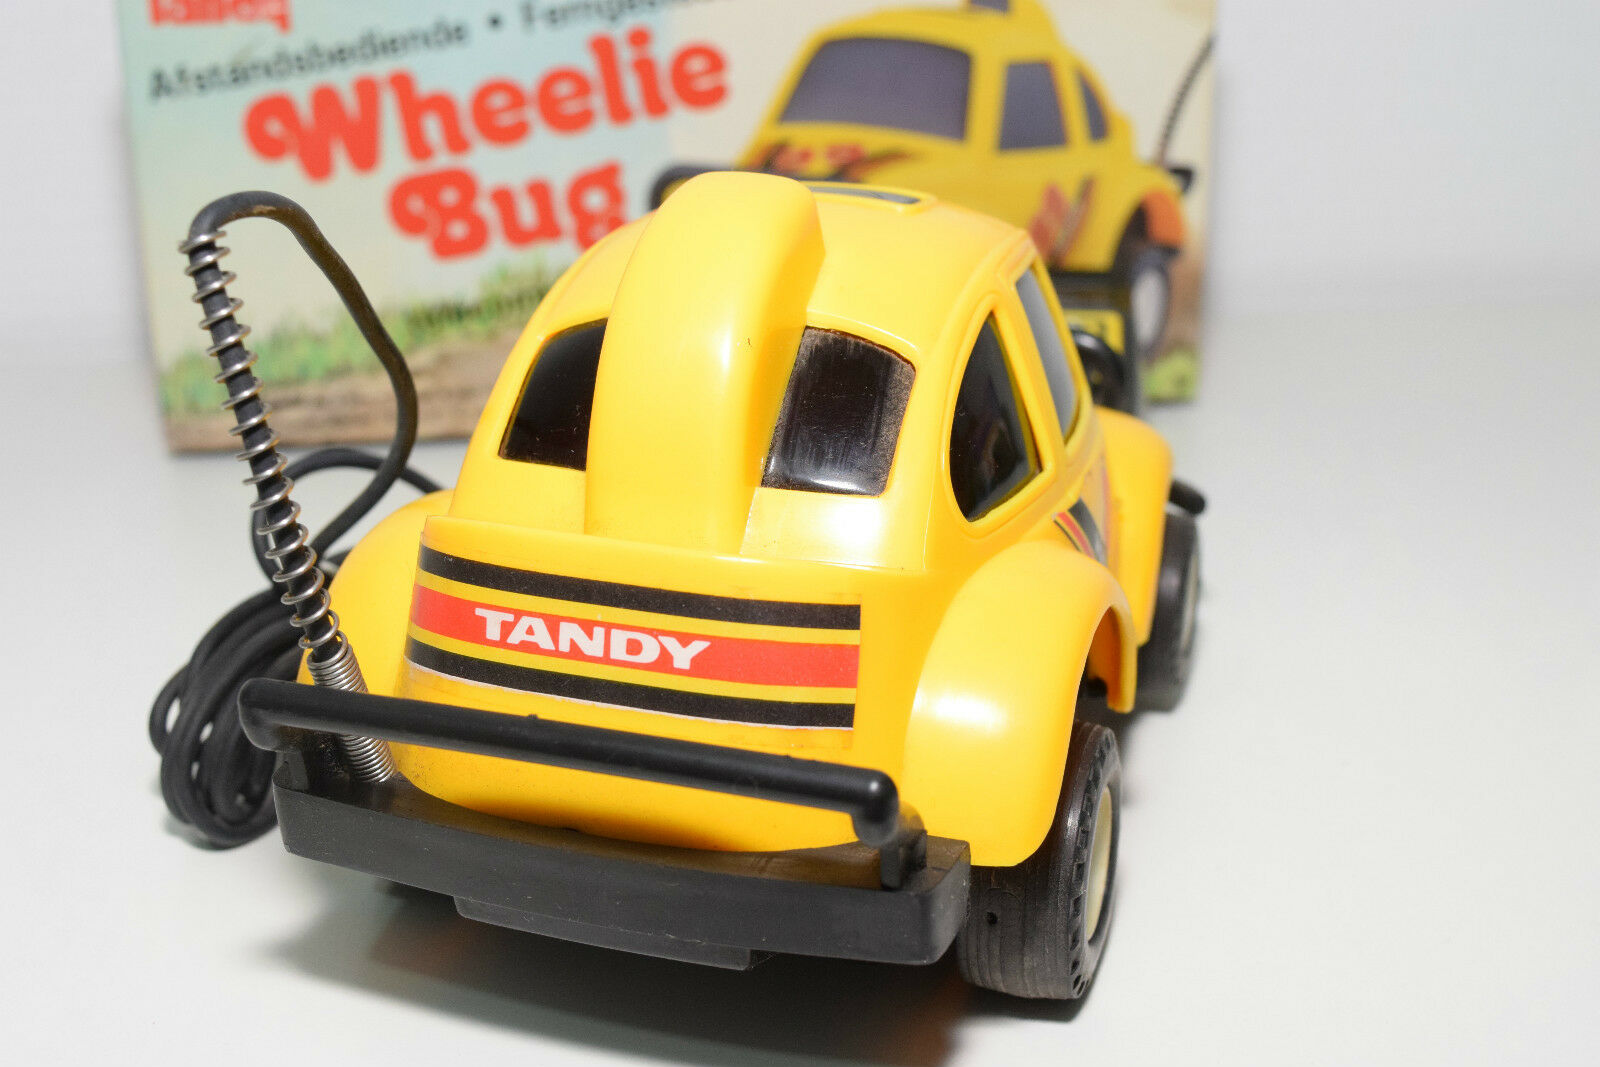 TANDY HONG KONG 2360 WHEELIE BUG BUG BUG VW VOLKSWAGEN BEETLE KAFER NEAR MINT BOXED 7b7b83